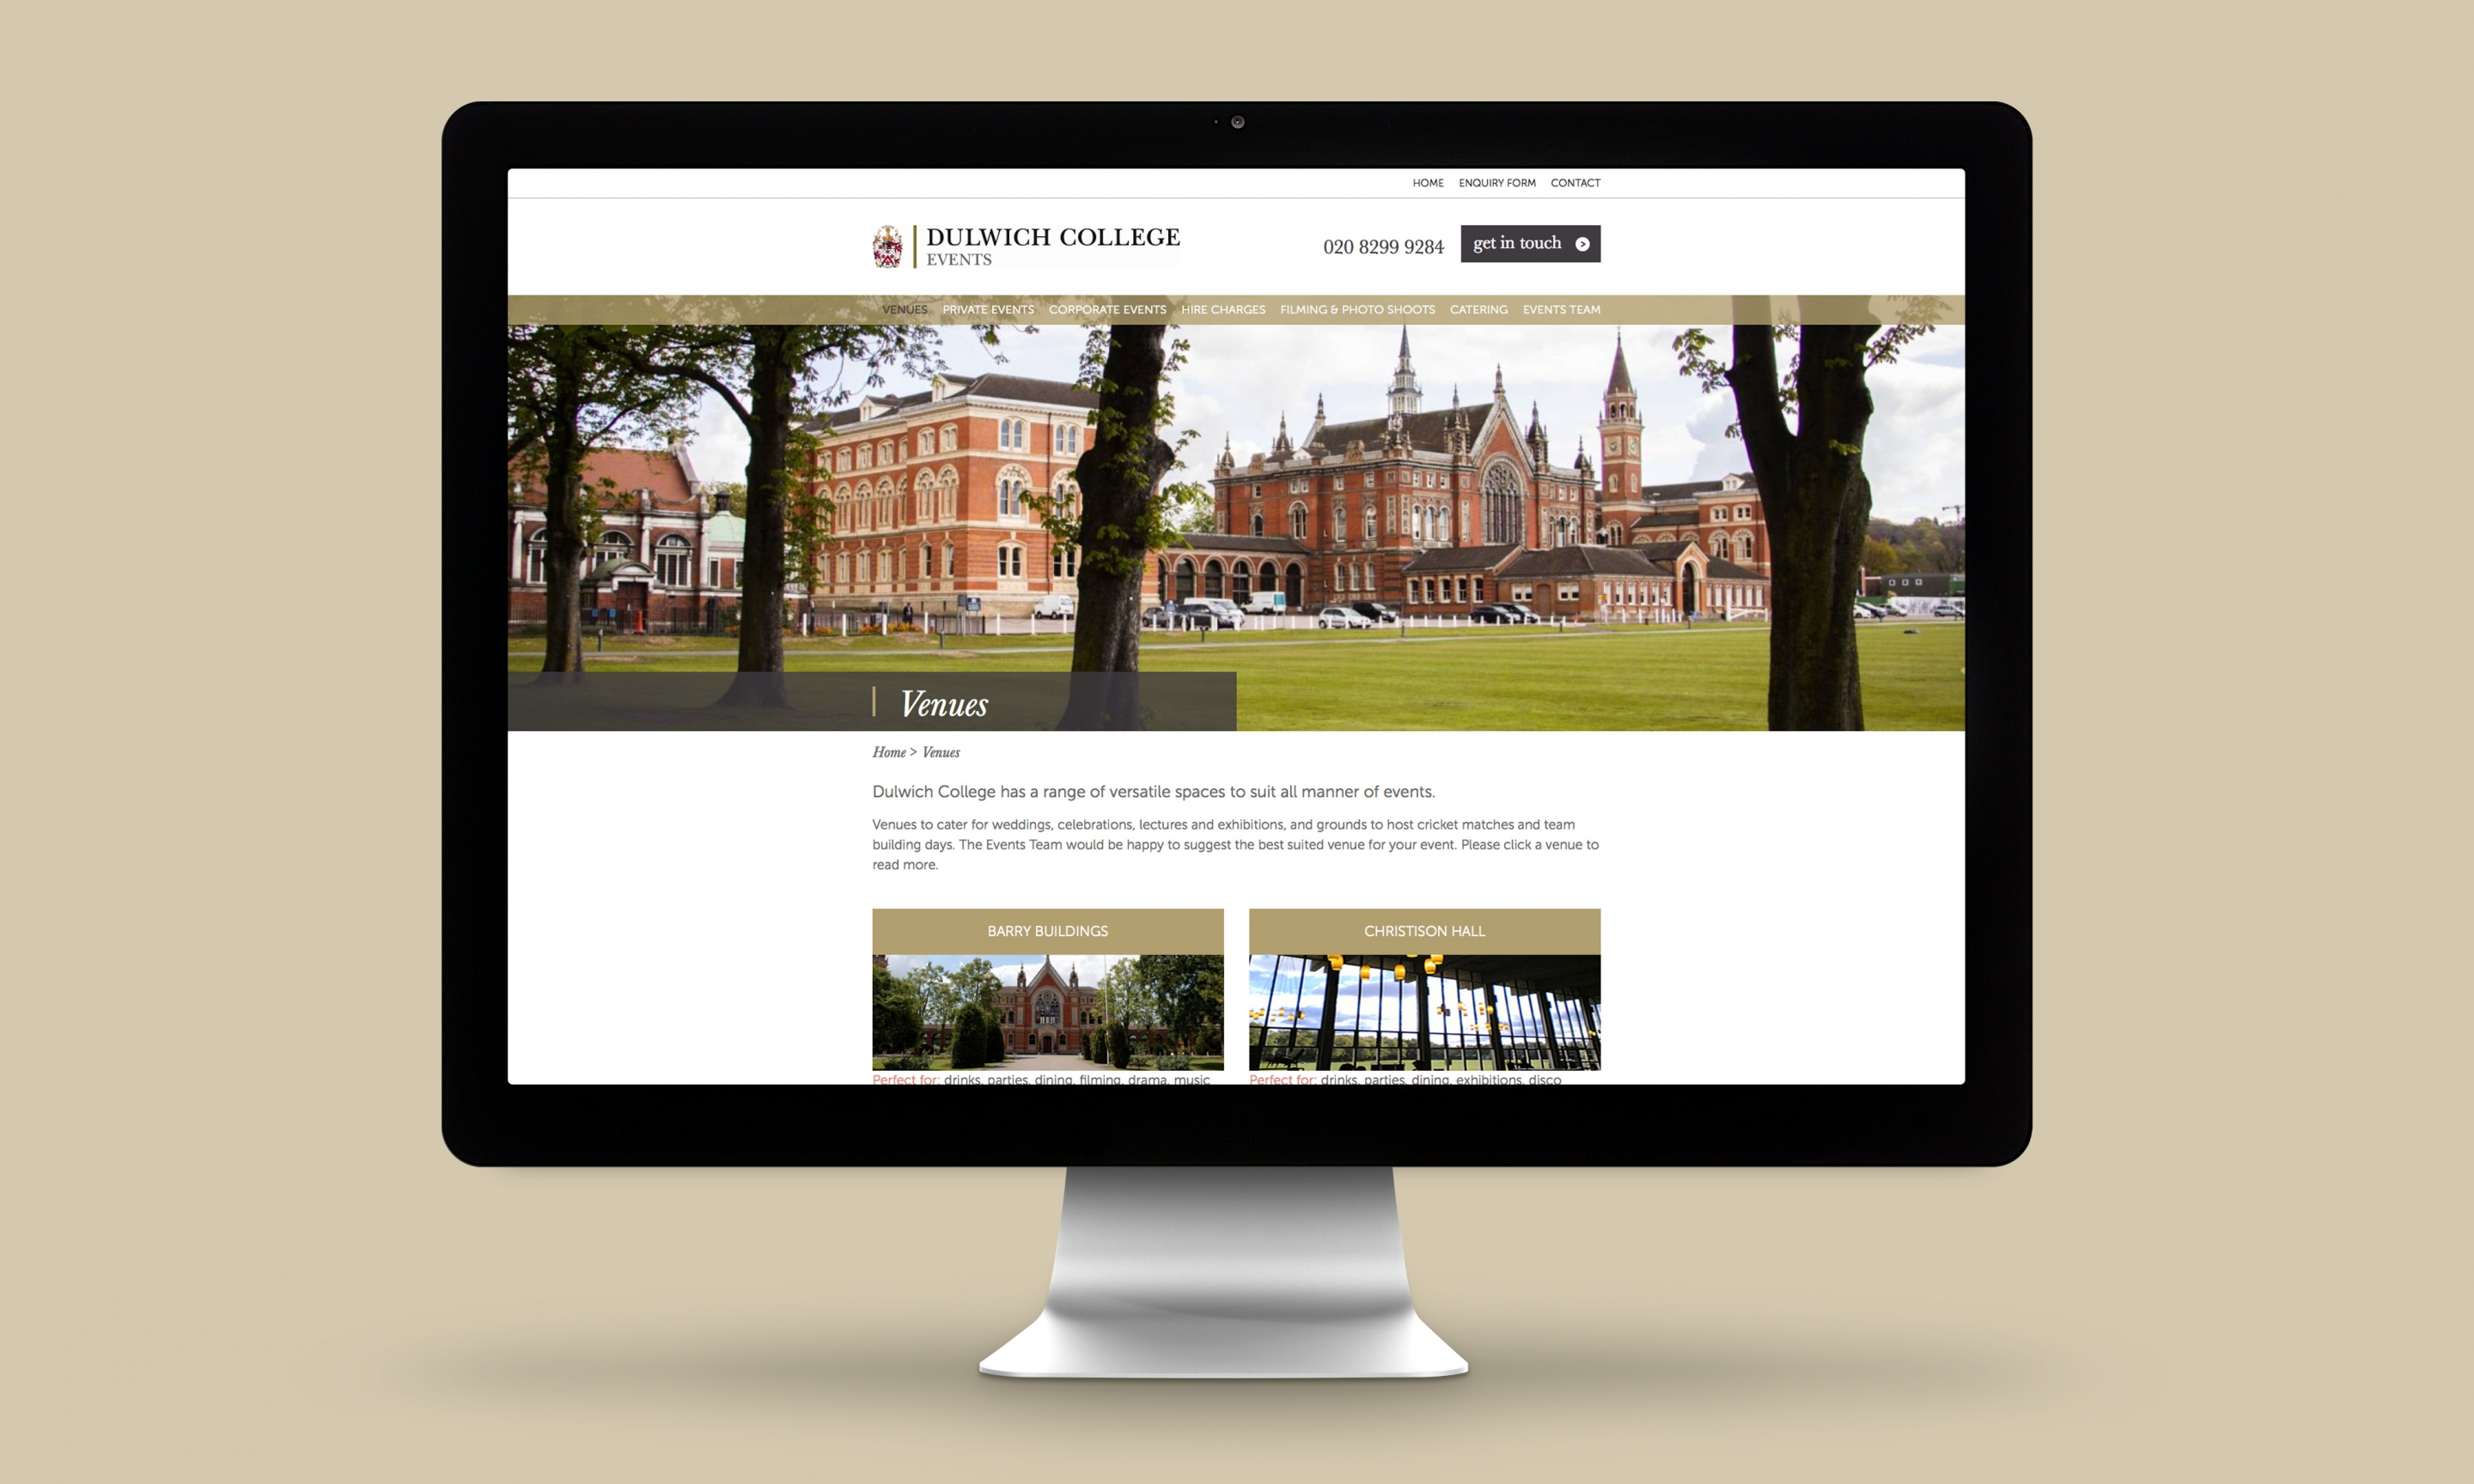 Dulwich College Events Website Design Venues page